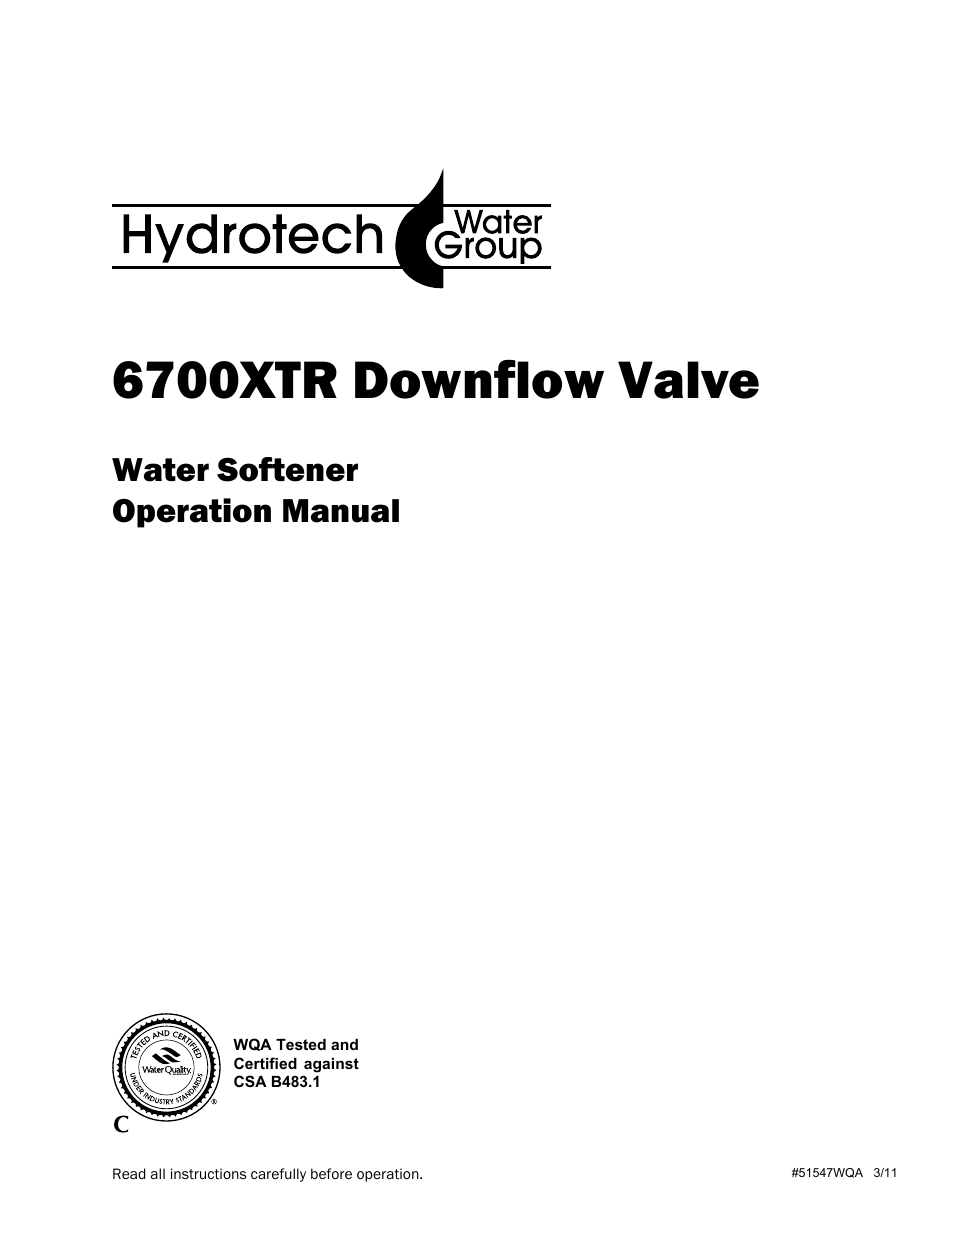 Hydrotech 6700 XTR Downflow Valve Water Softener User